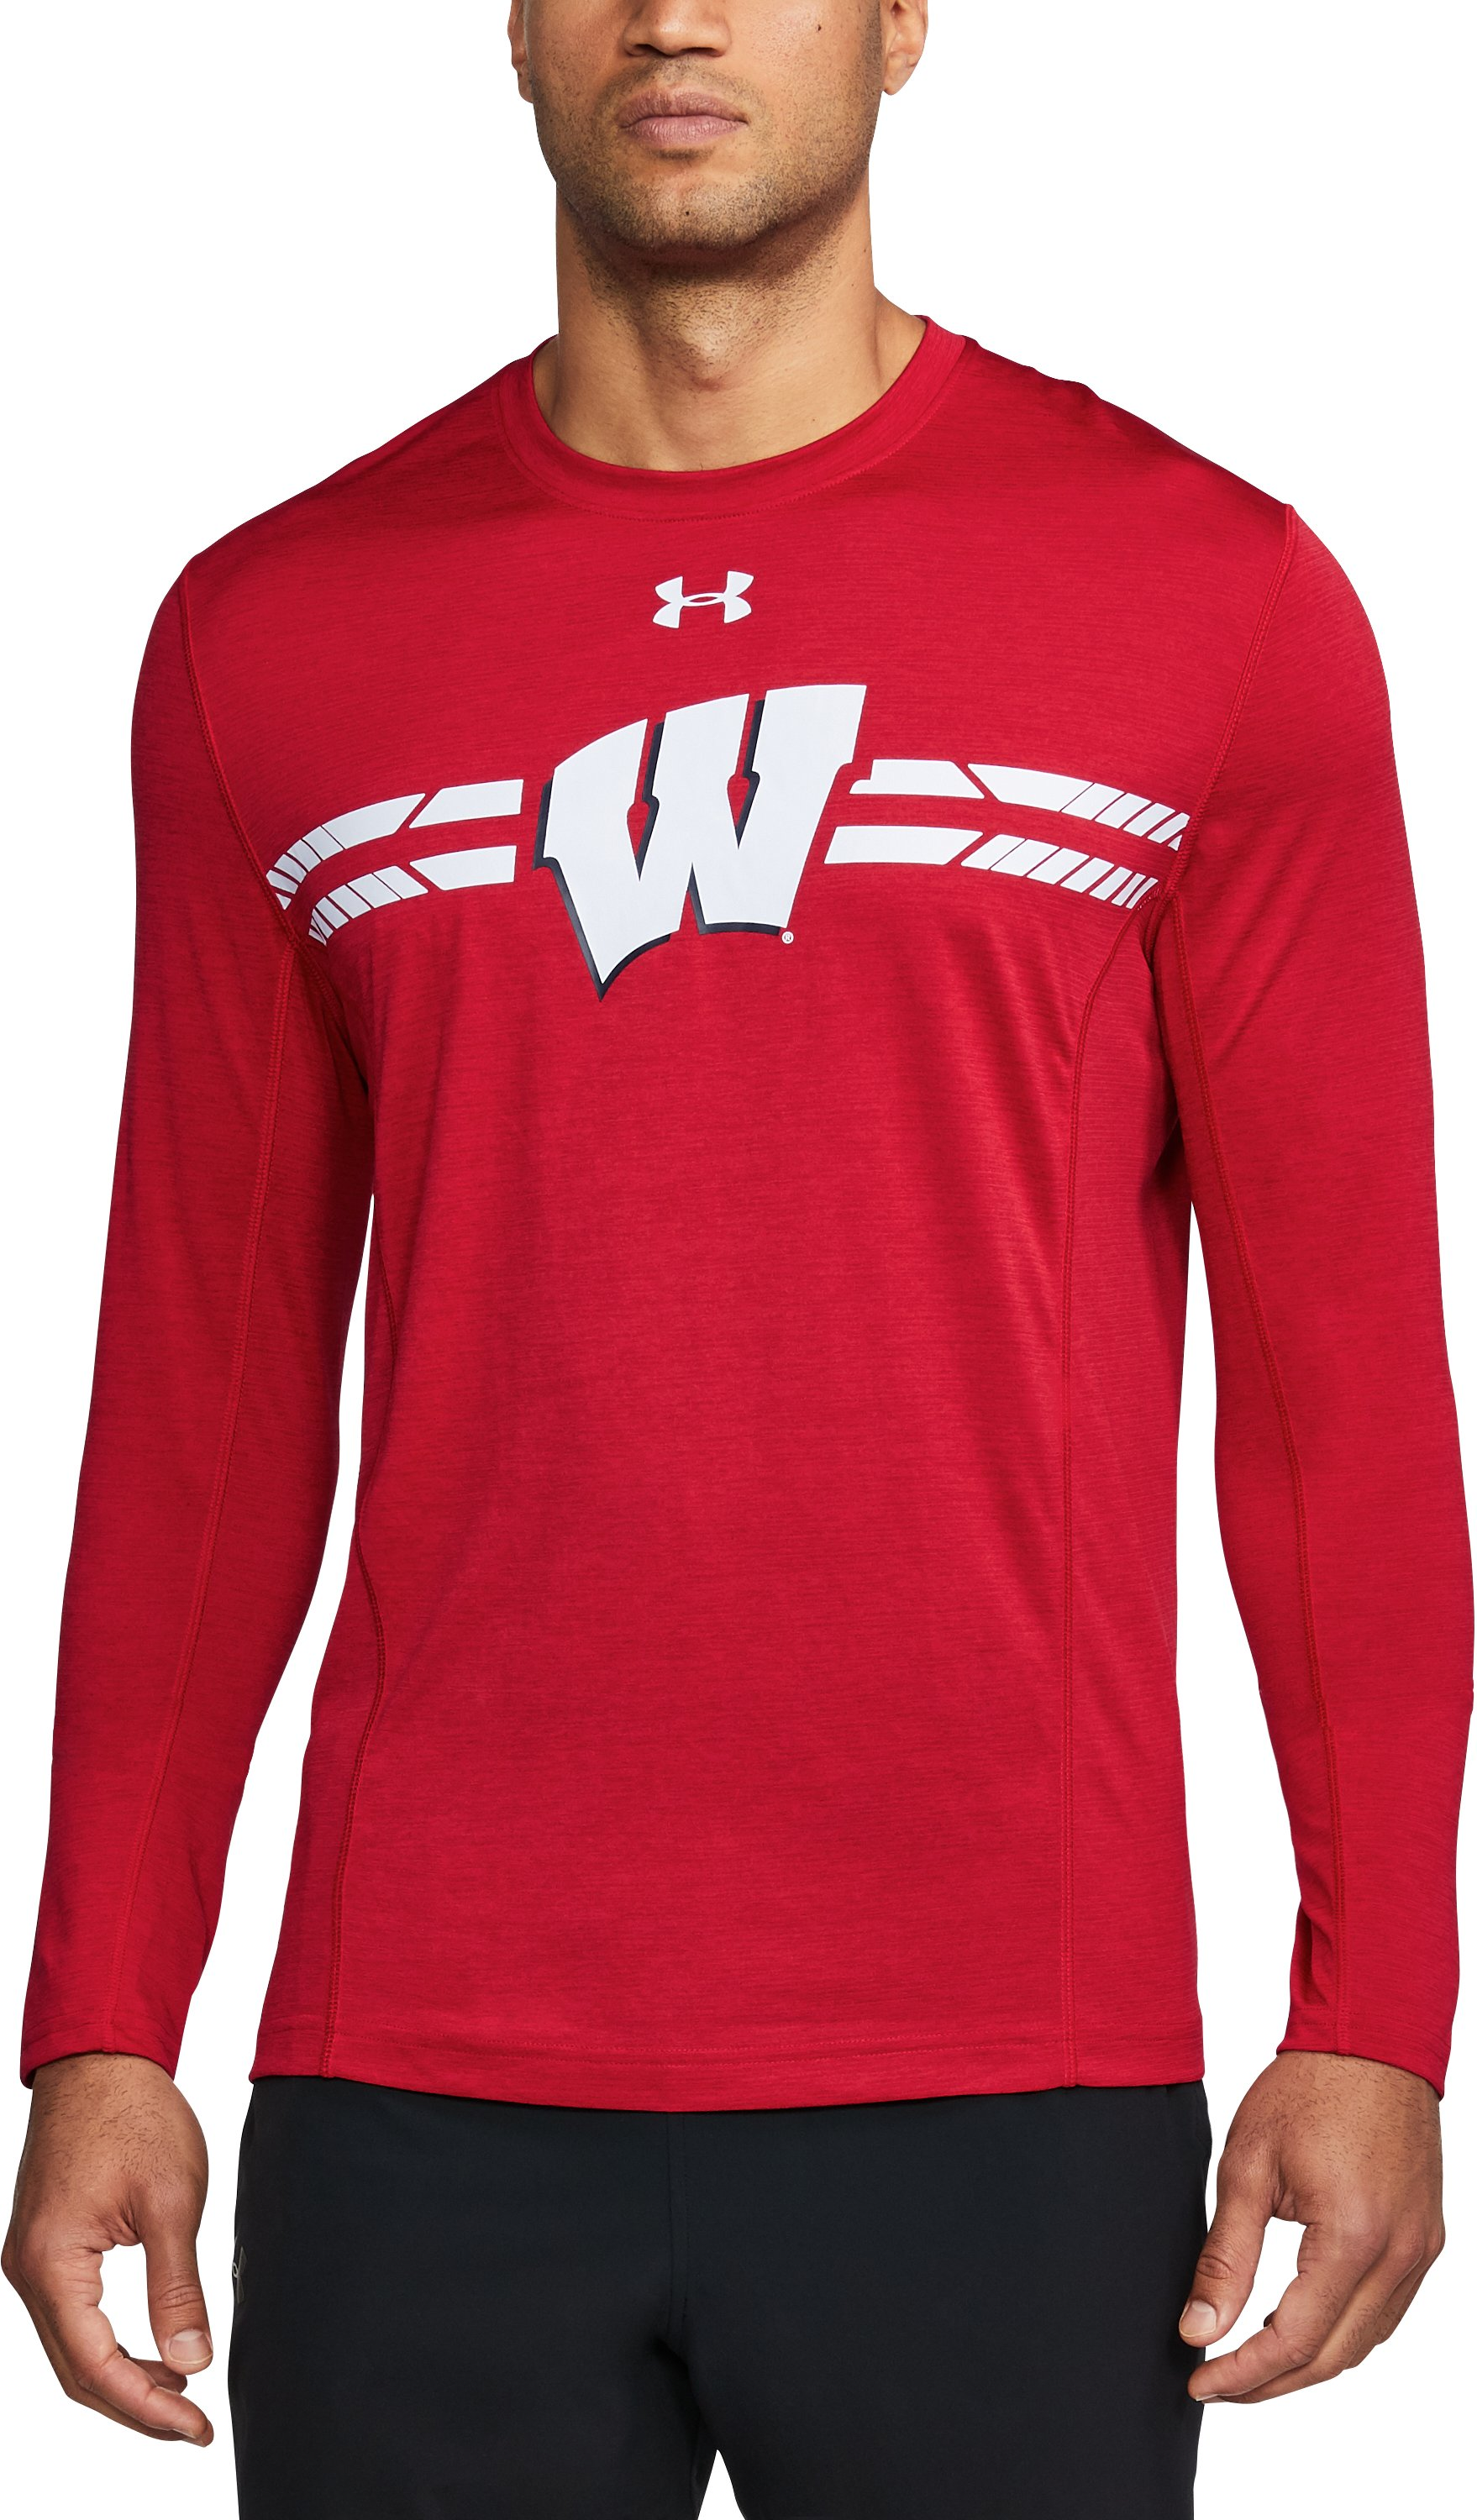 football training t shirts Men's Wisconsin Long Sleeve Training T-Shirt